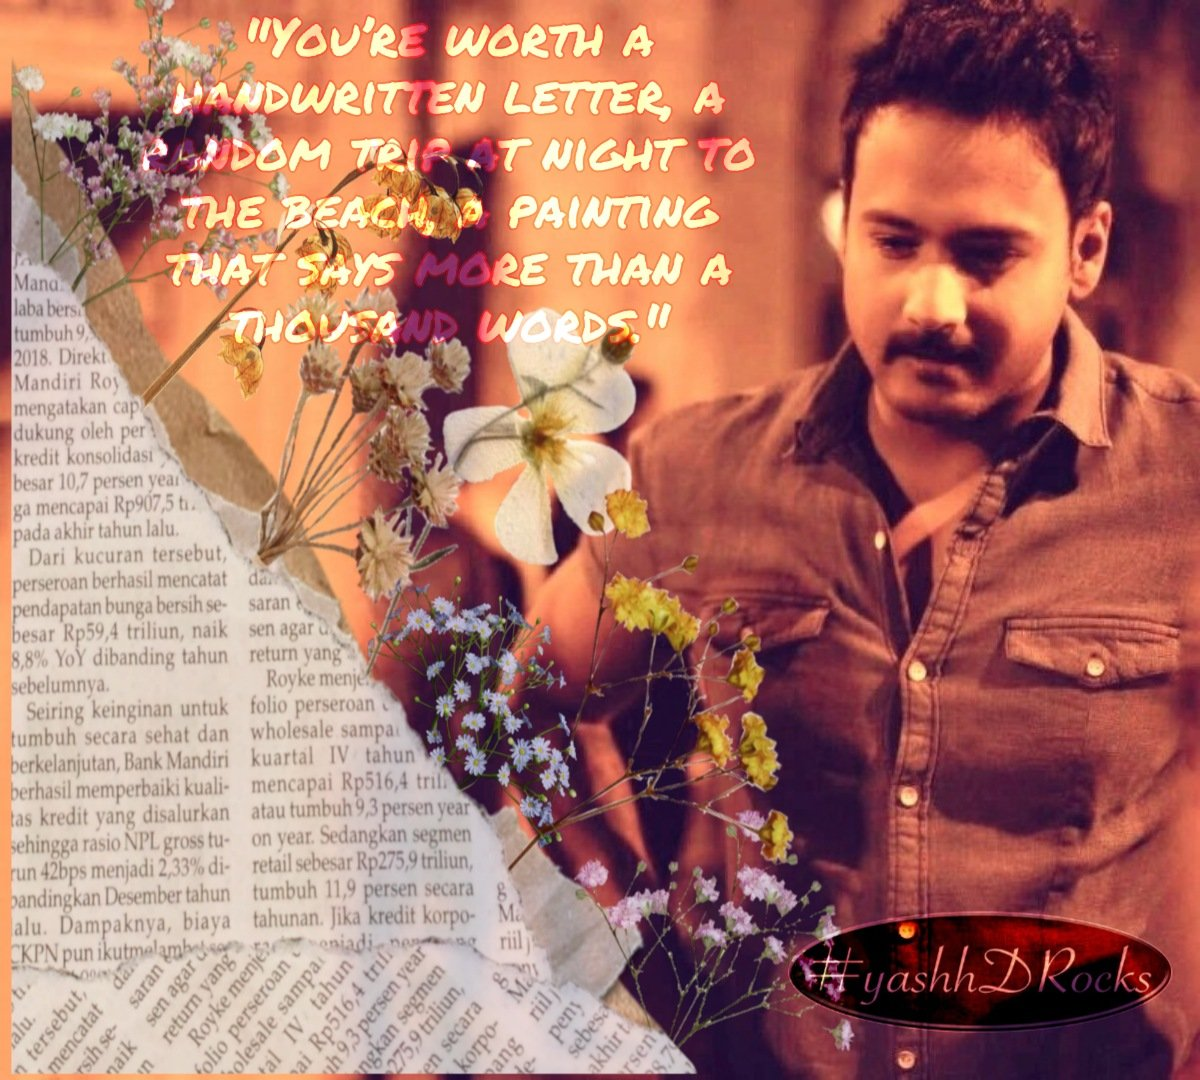 """You're worth a handwritten letter, a random trip at night to the beach, a painting that says more than a thousand words."" — Scottie Waves #yashhDRocks #yashdasgupta #TollywoodActor #ExpressionKing #UpcomingMovie #thriller #SOSkolkatapic.twitter.com/1QqejqdTOB"